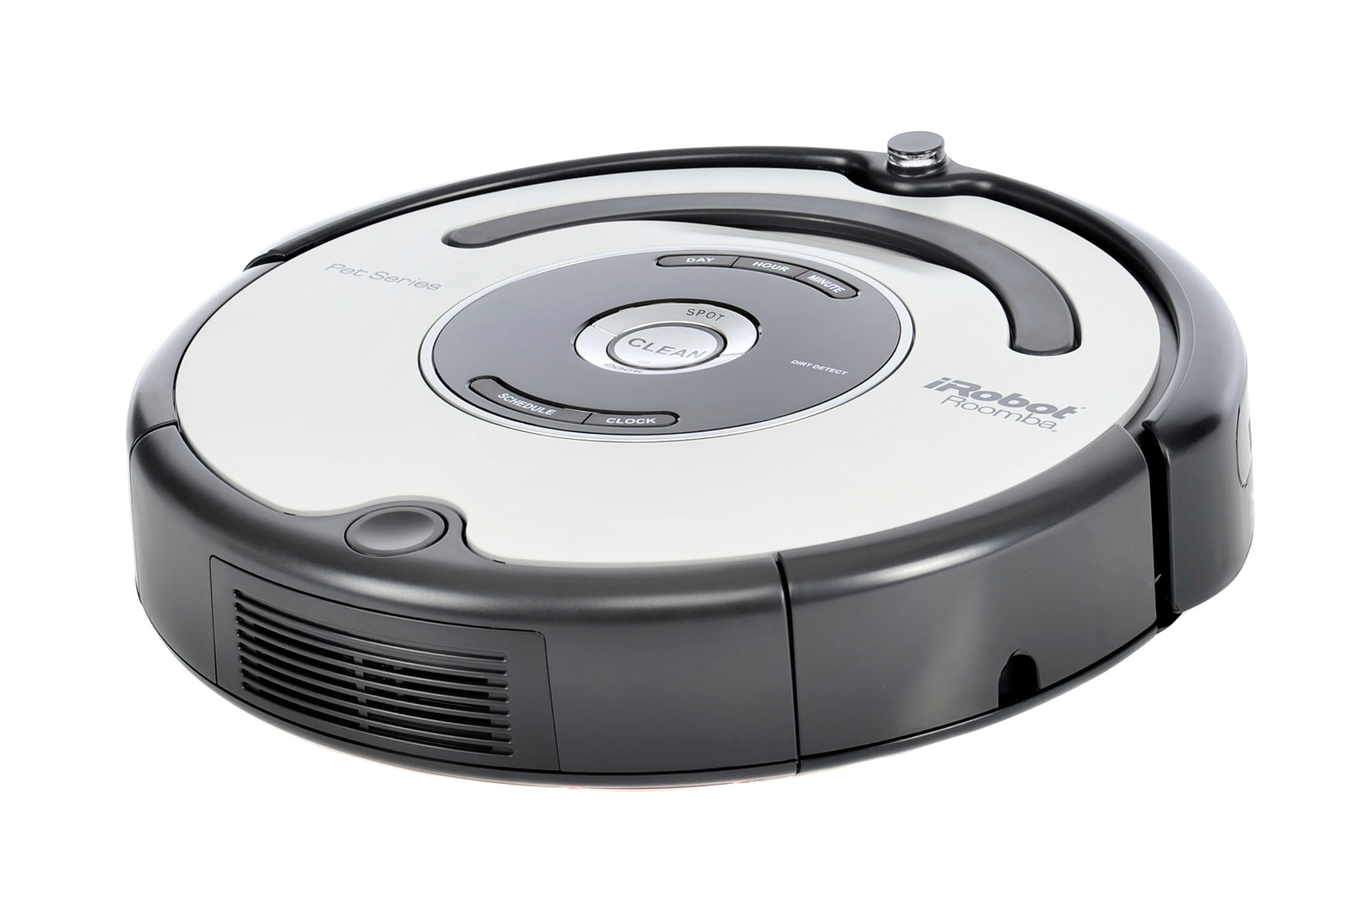 aspirateur robot irobot roomba pet 563 3192644 darty. Black Bedroom Furniture Sets. Home Design Ideas